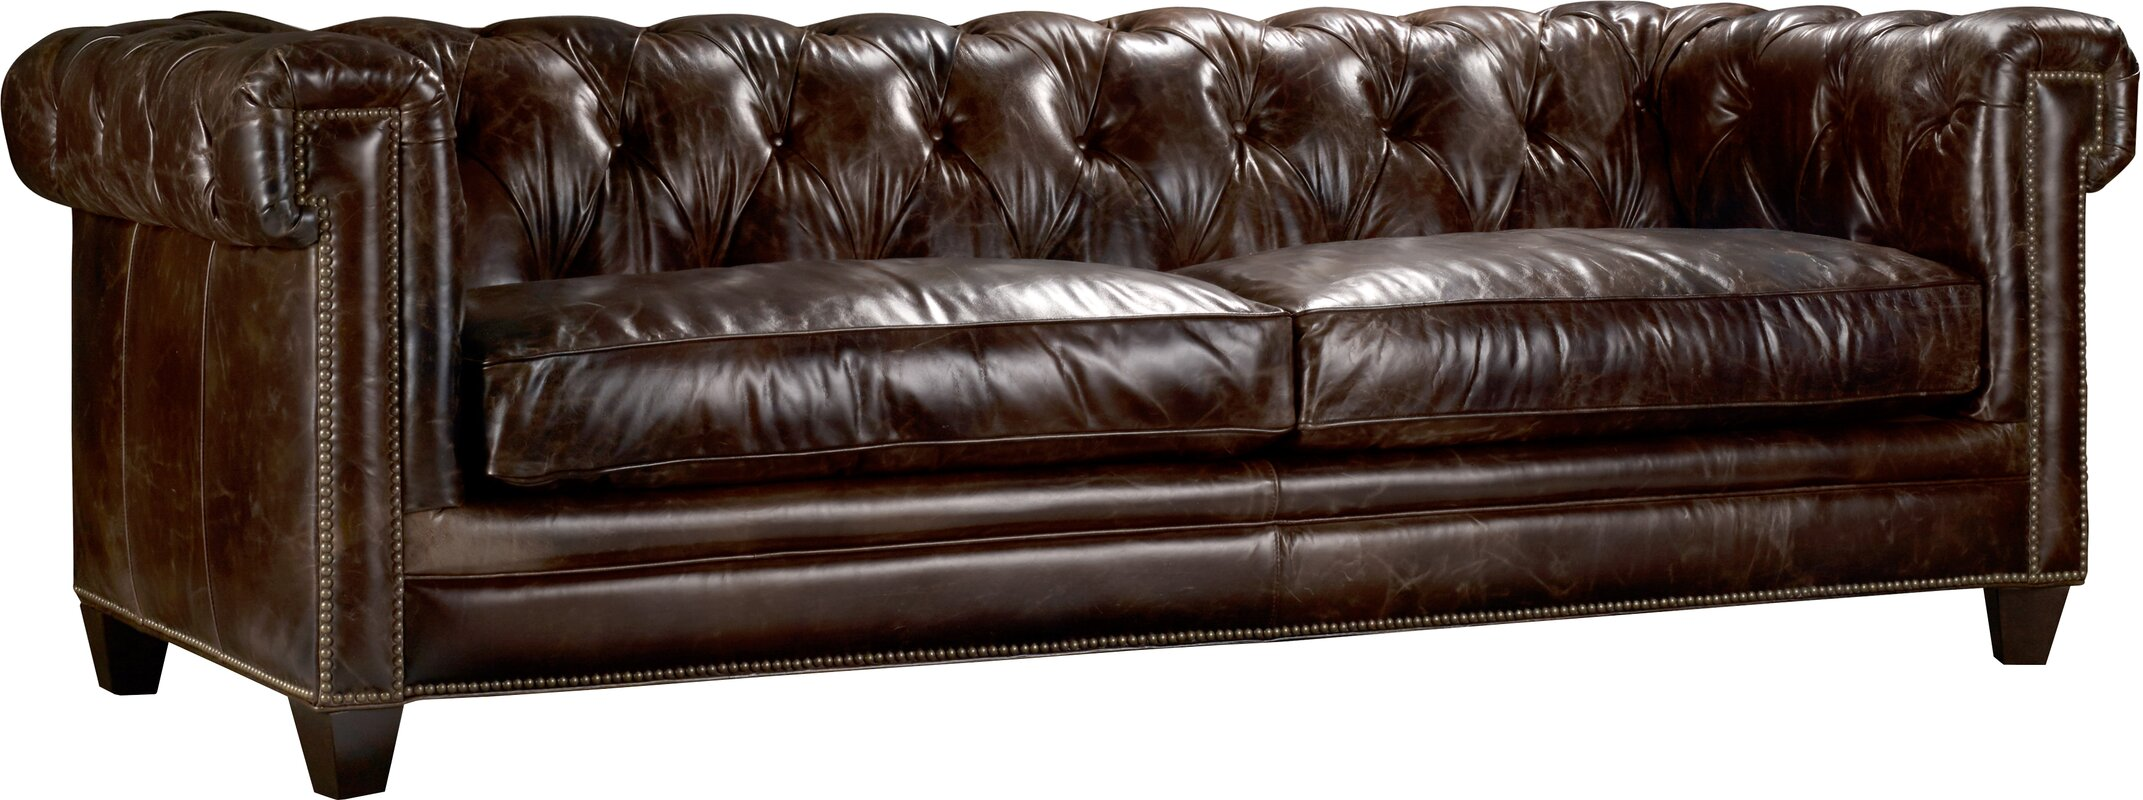 Imperial Regal Stationary Leather Chesterfield Sofa